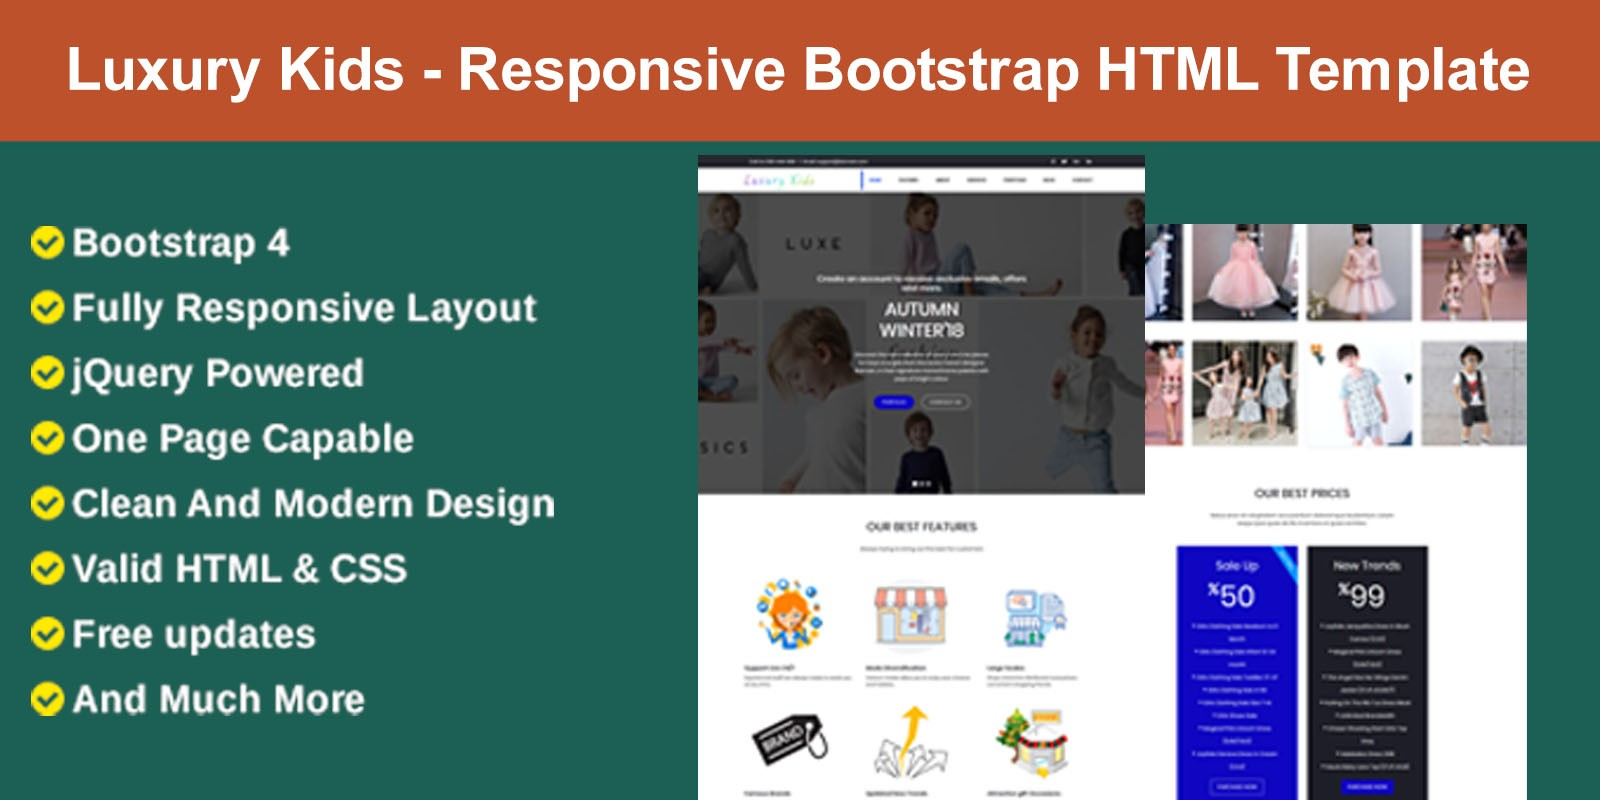 Luxury Kids - Responsive Bootstrap HTML Template